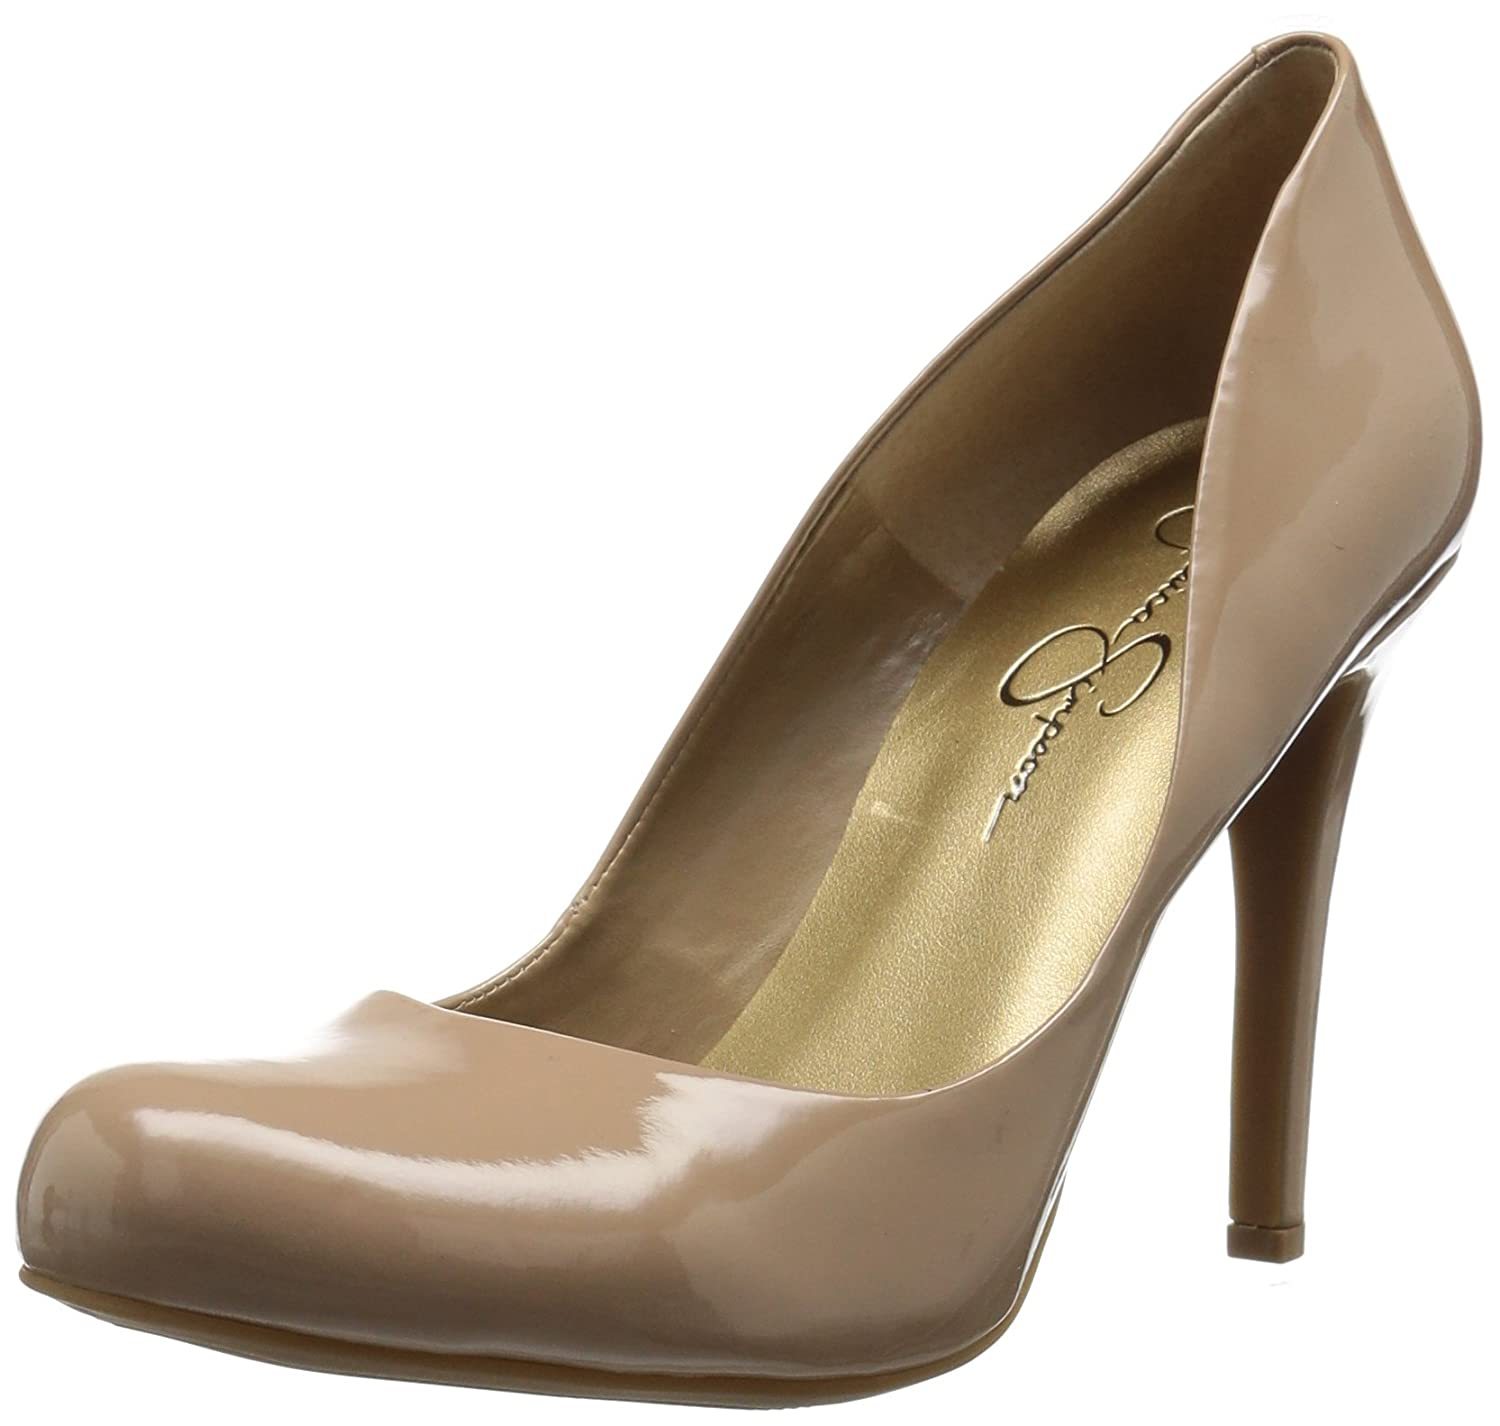 aeb27028c0c Jessica Simpson Women's Calie Pump